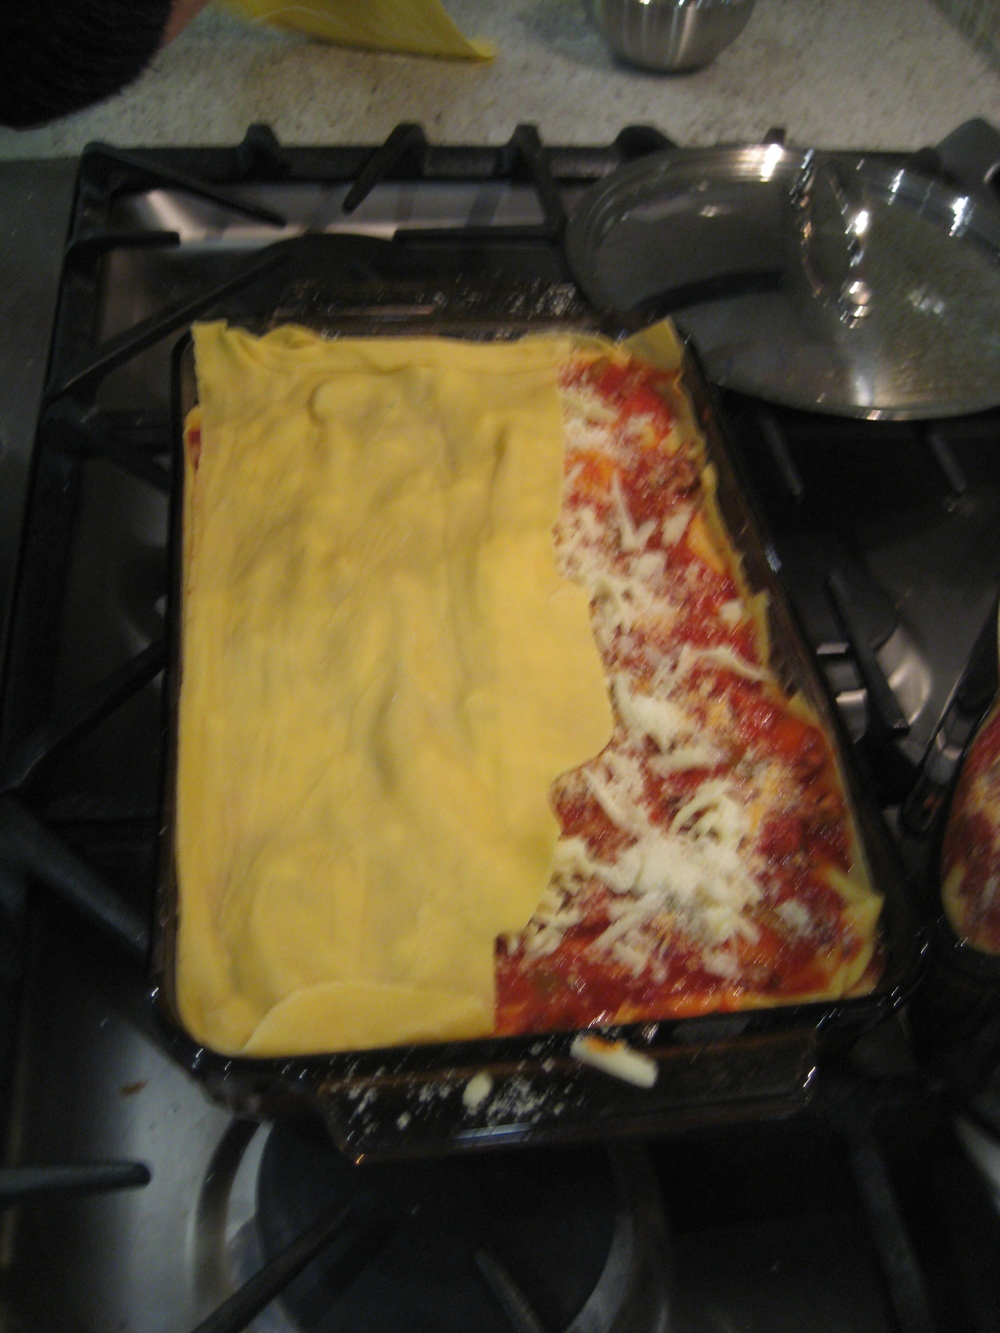 COVER BASE TOMATO LAYER WITH PASTA SHEET(S) AND ADD SAUCE, MOZZARELLA,  Béchamel OR  RICOTTA, GRATED PARMESEAN & REPEAT